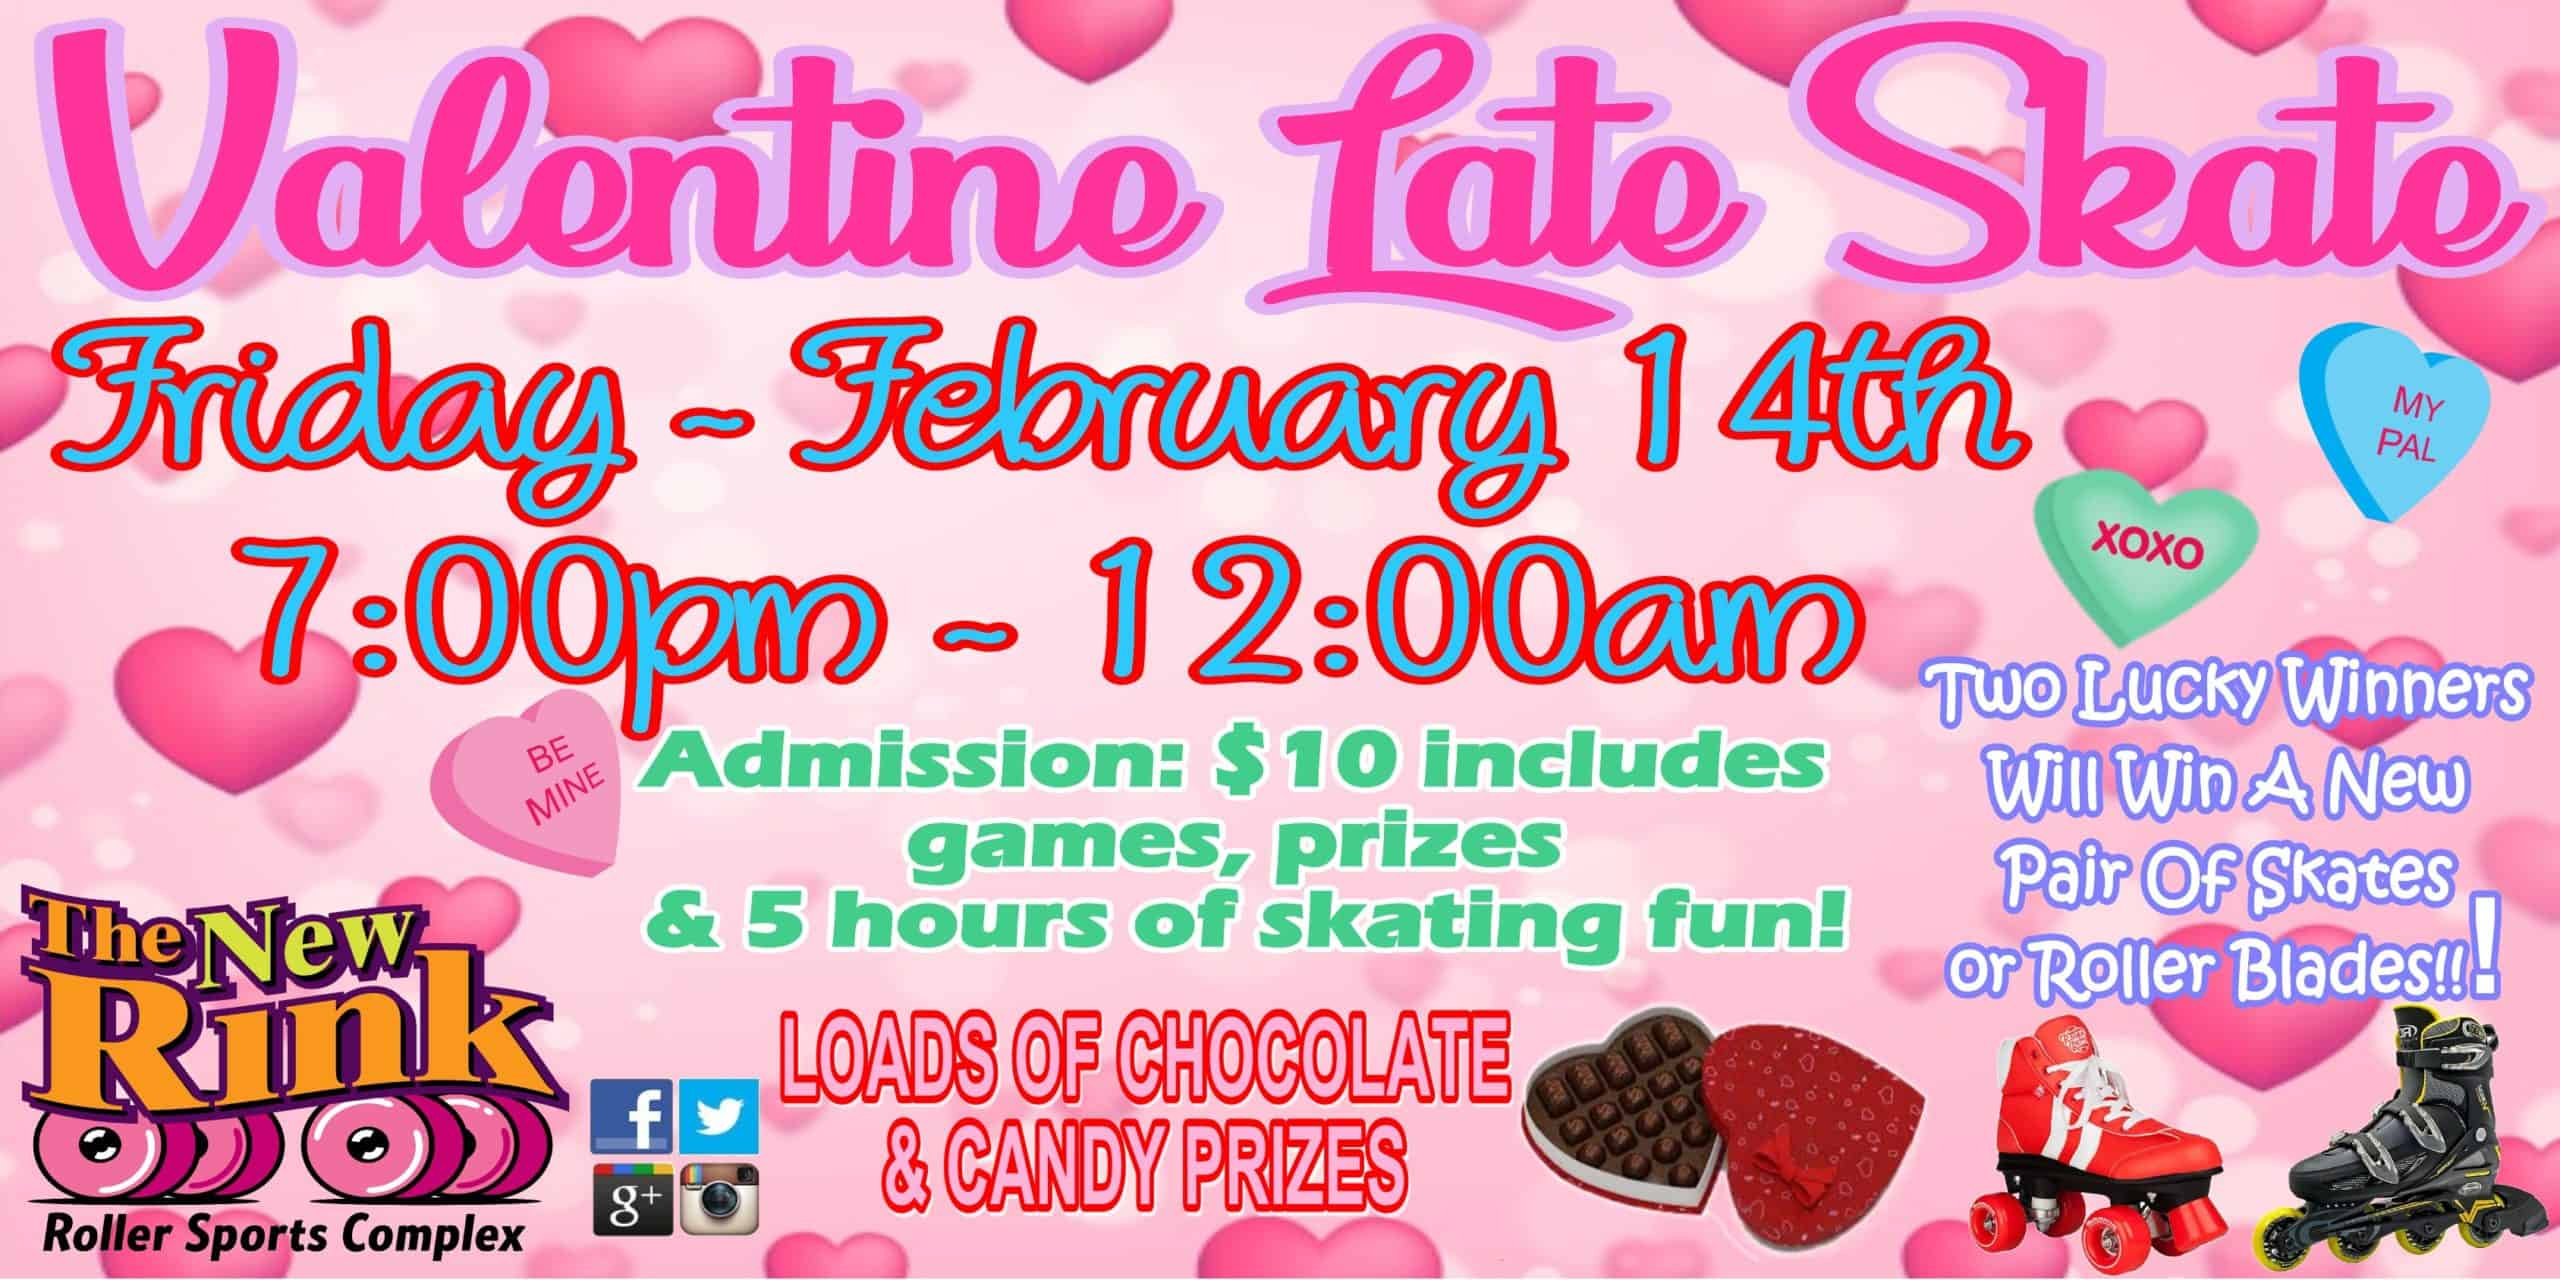 Valentines event shelby twp Utica